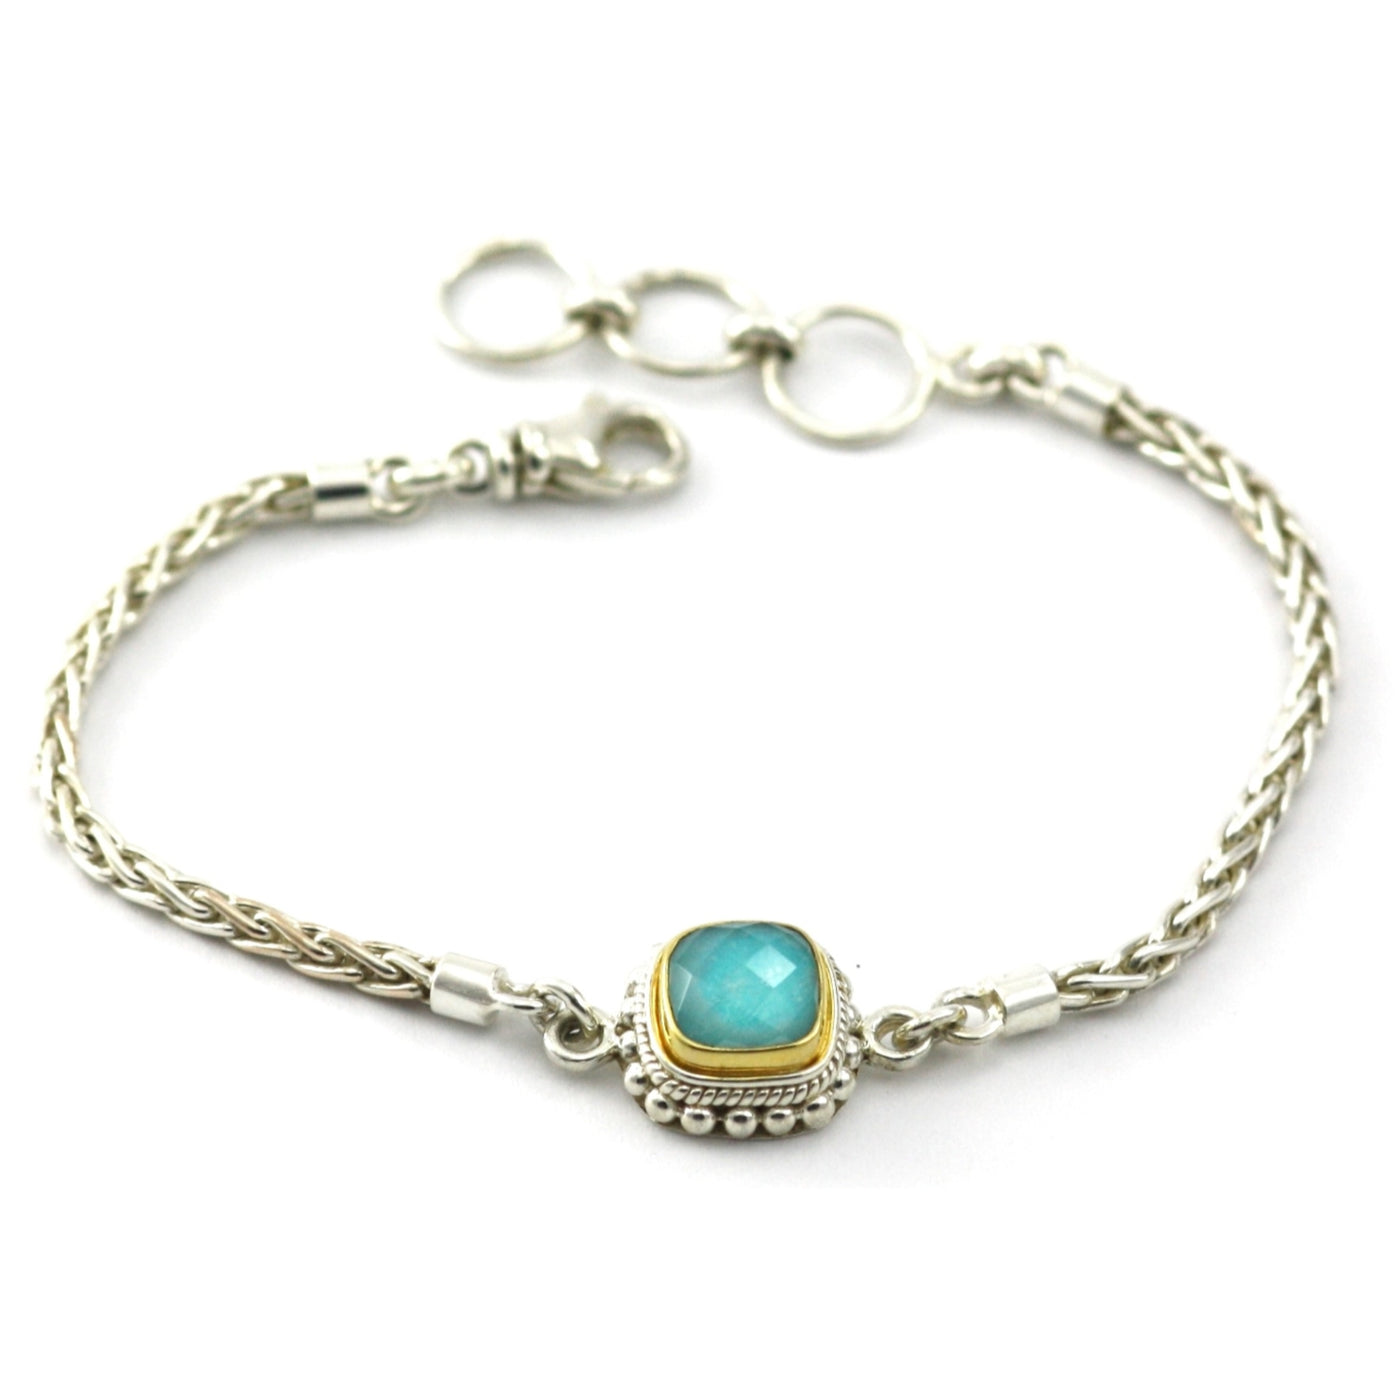 ID B216TQFG TURQUOISE AND GOLD BRACELET